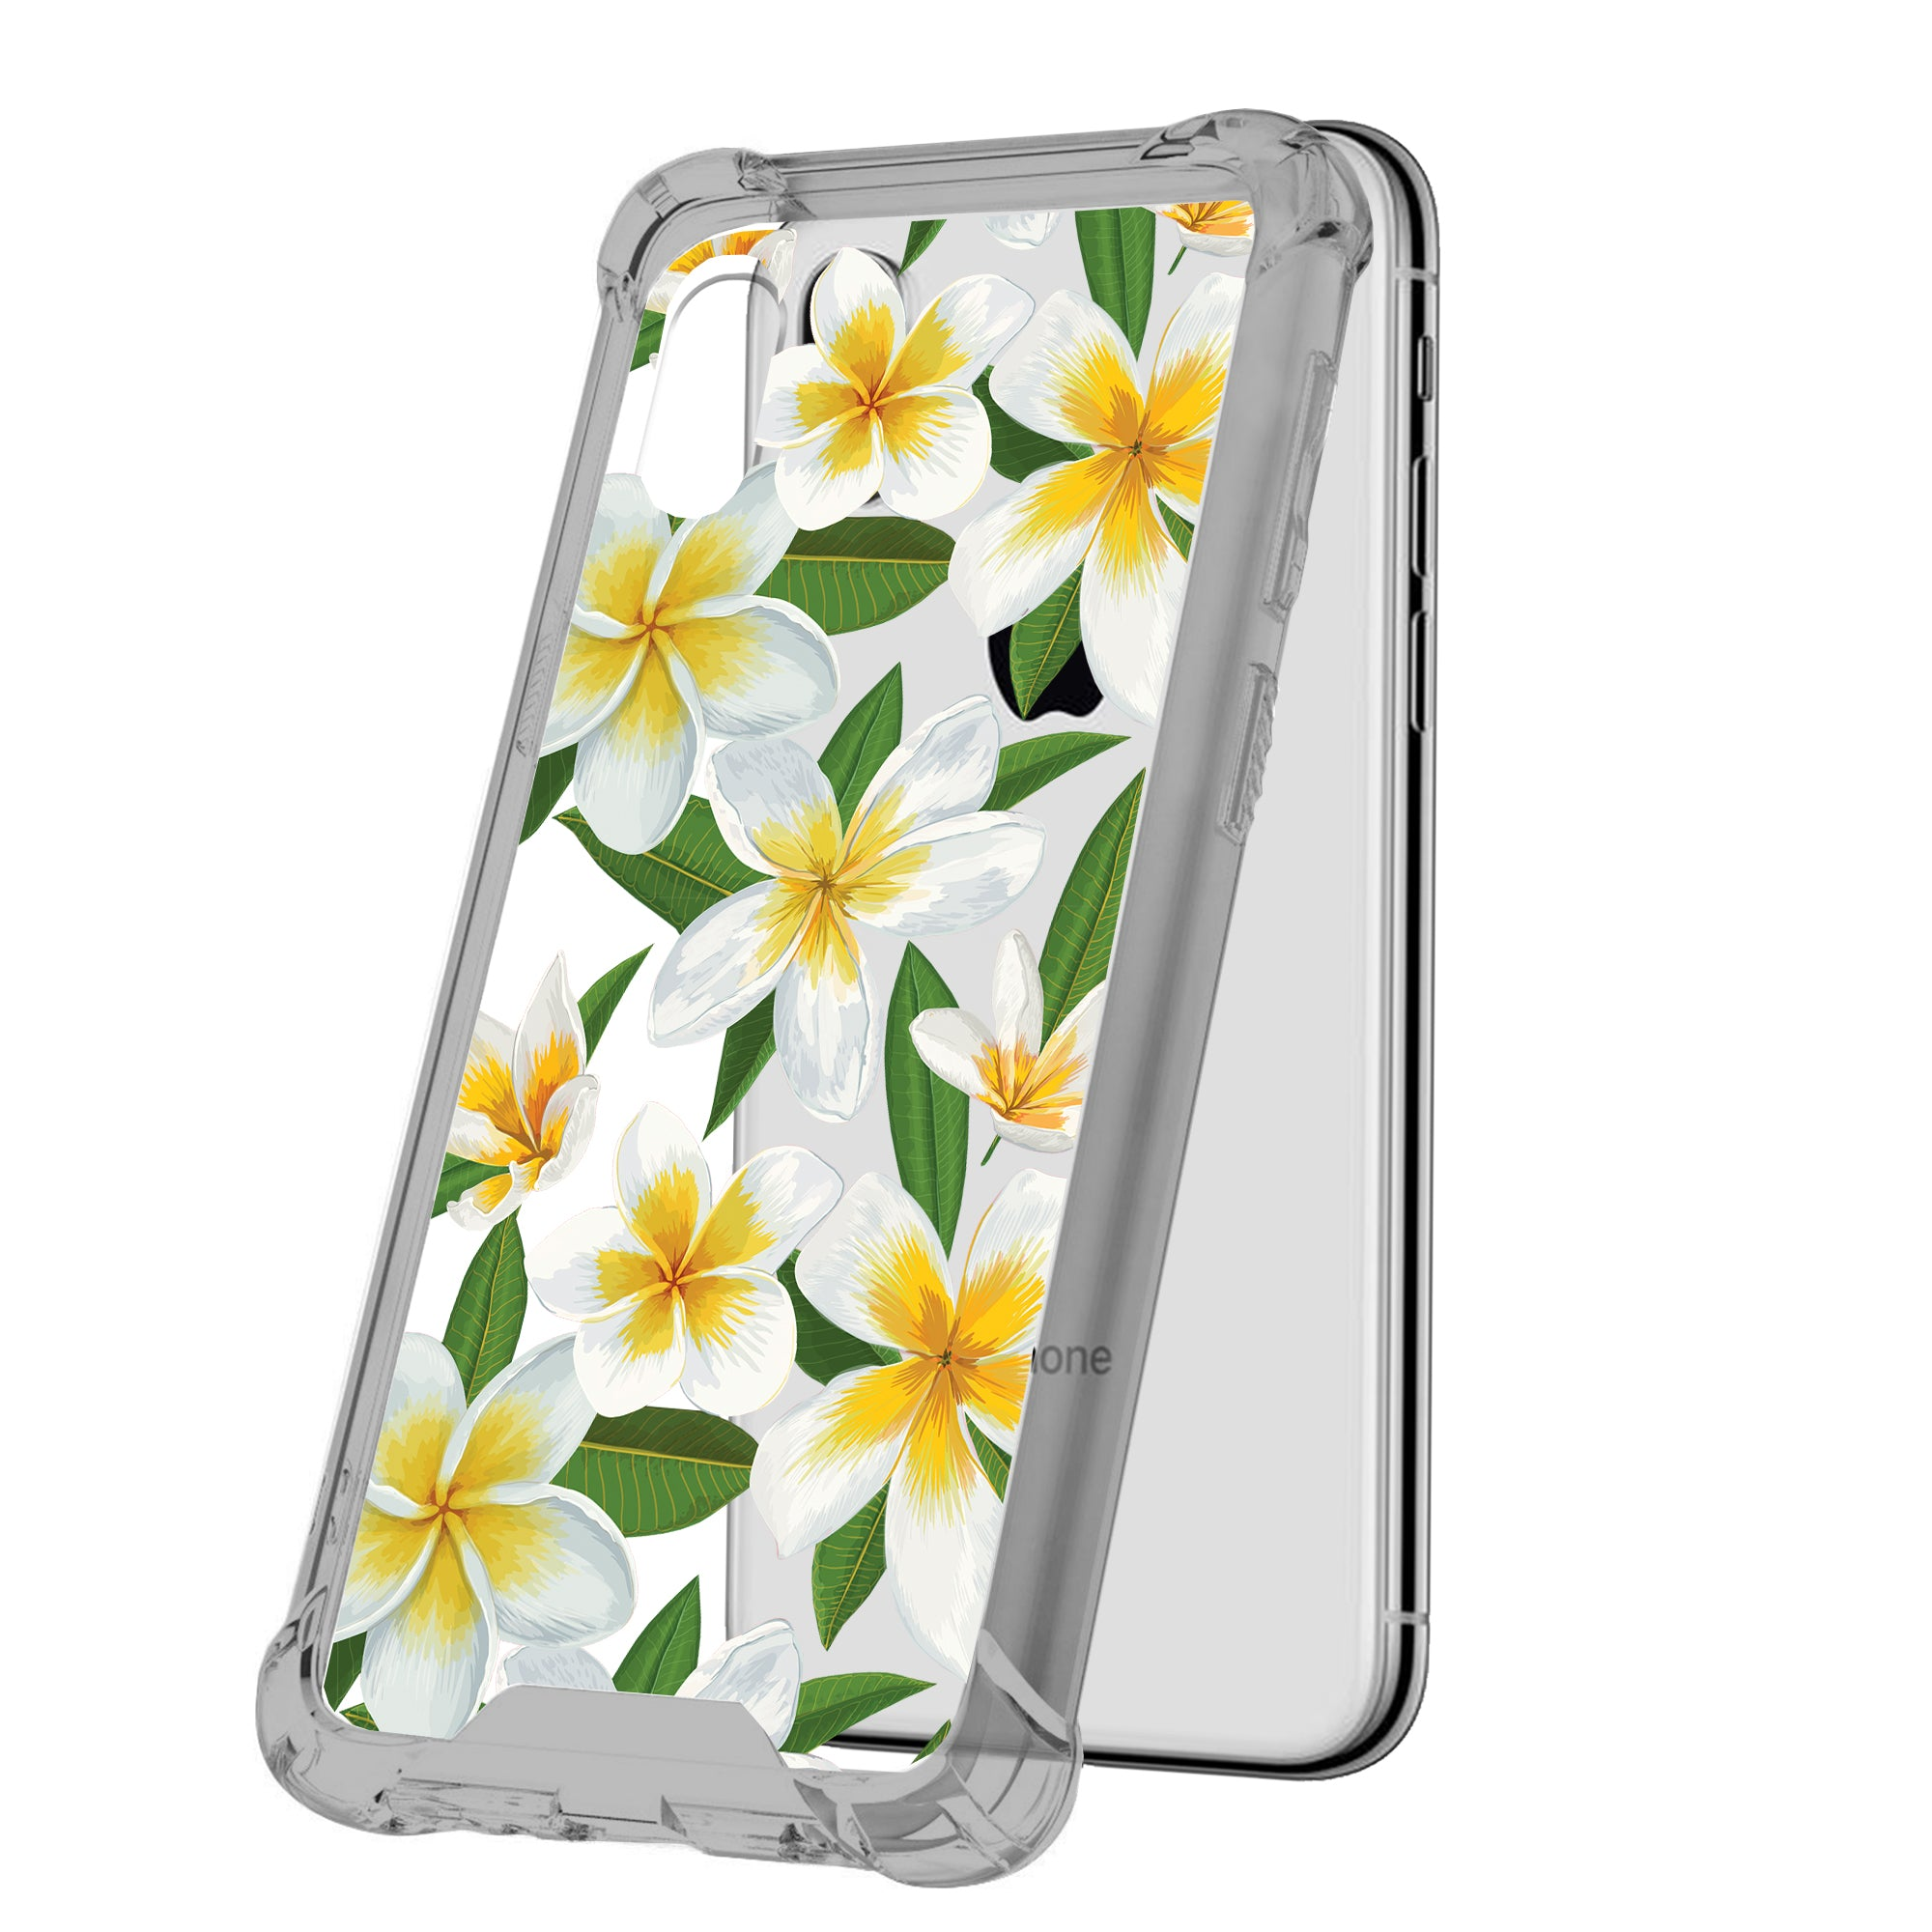 For-Apple-iPhone-Xs-Max-iPhone-Xs-Max-Black-TPU-Bumper-Case-Floral-Designs thumbnail 5